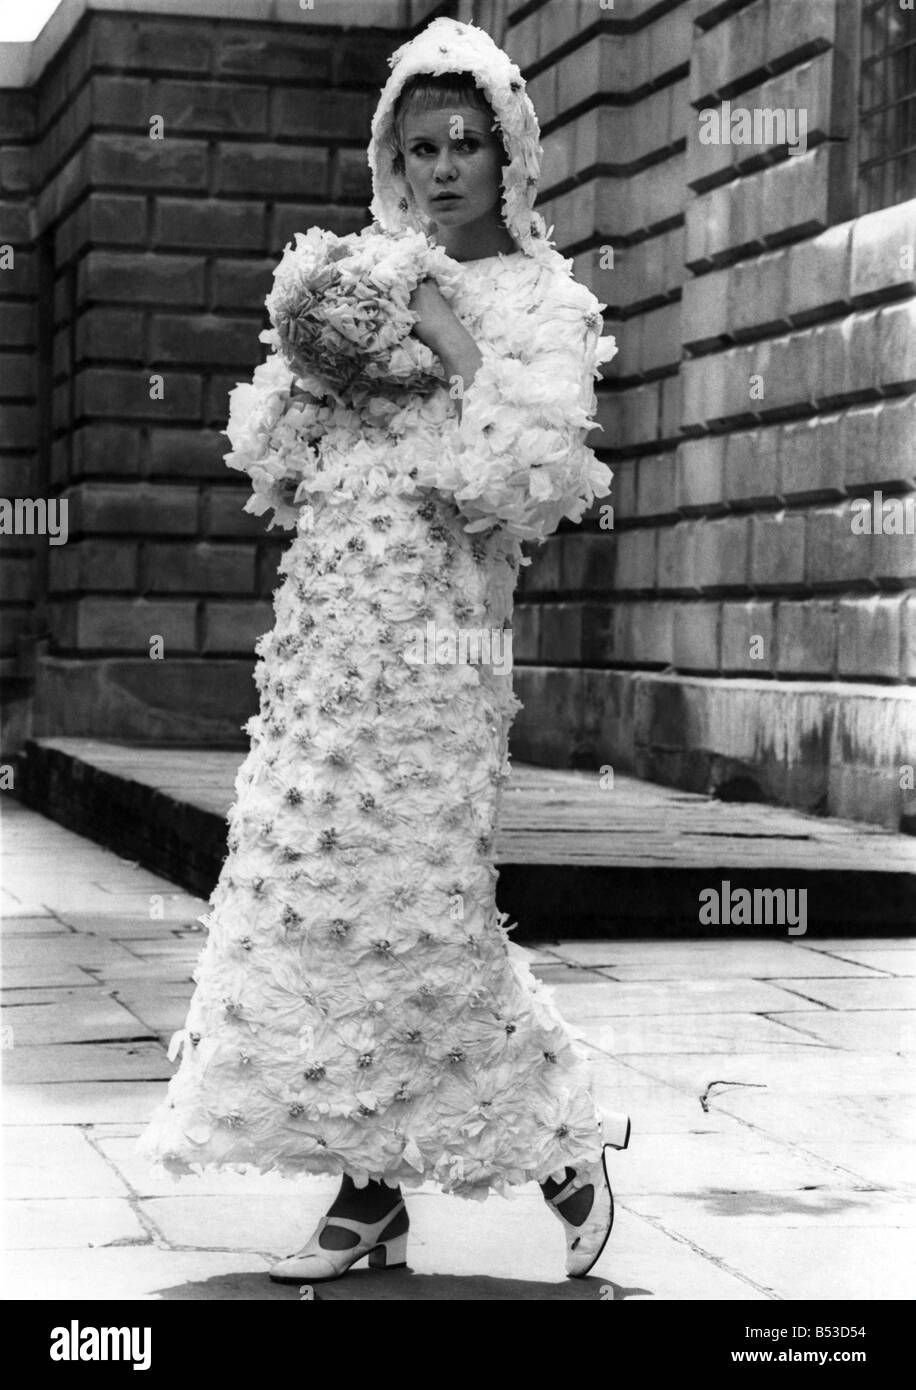 Fashion 1960s: Getting into the paper when you Marry. Wedding gowns ...